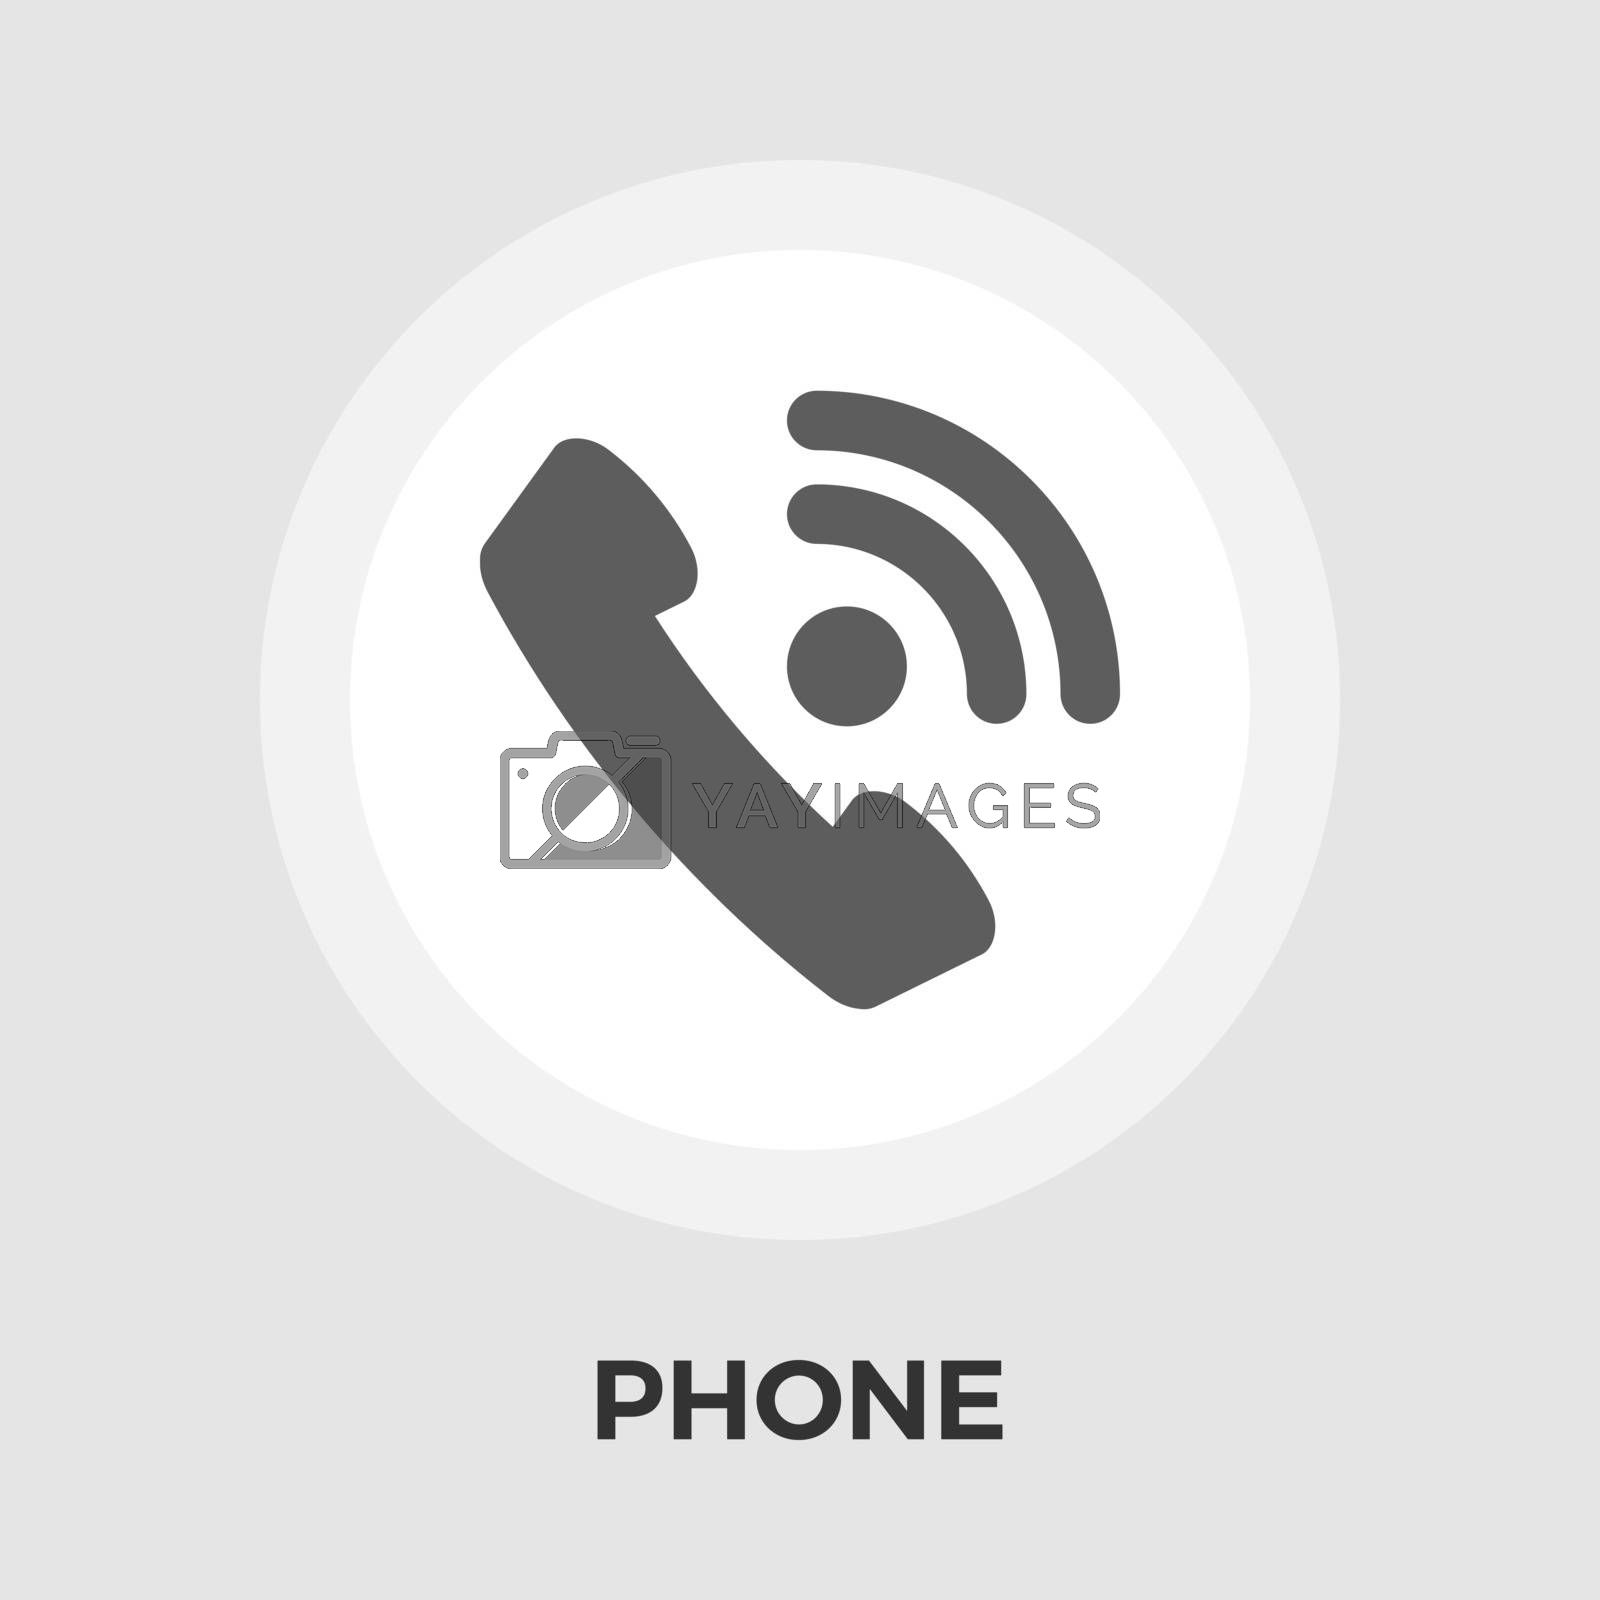 Office phone vector flat icon by smoki